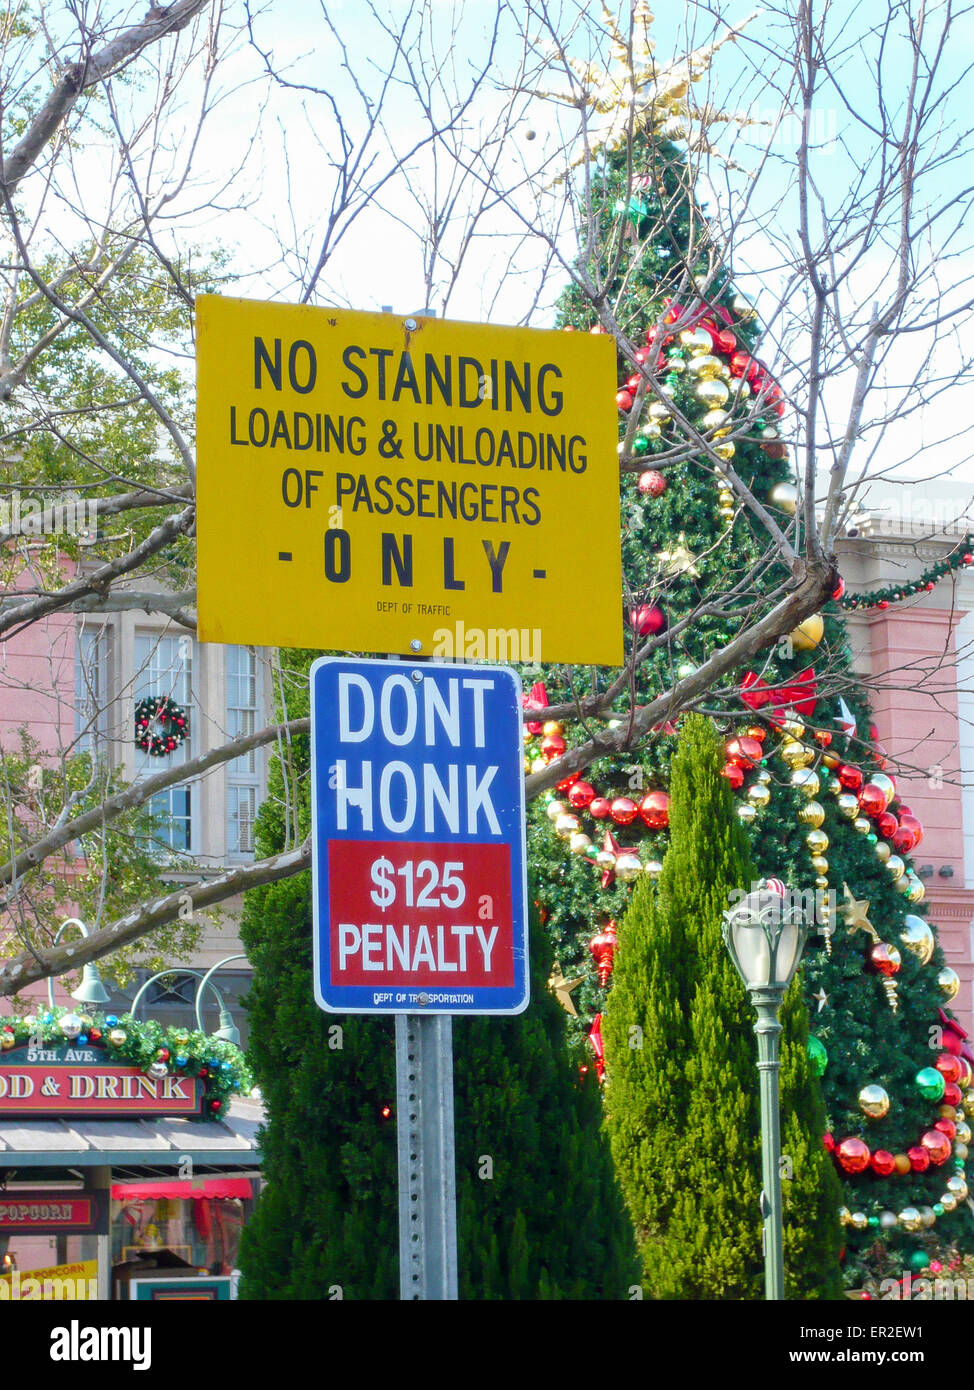 Street signs warning no standing, loading and unloading of passengers only, and $125 penalty for honking horn. - Stock Image